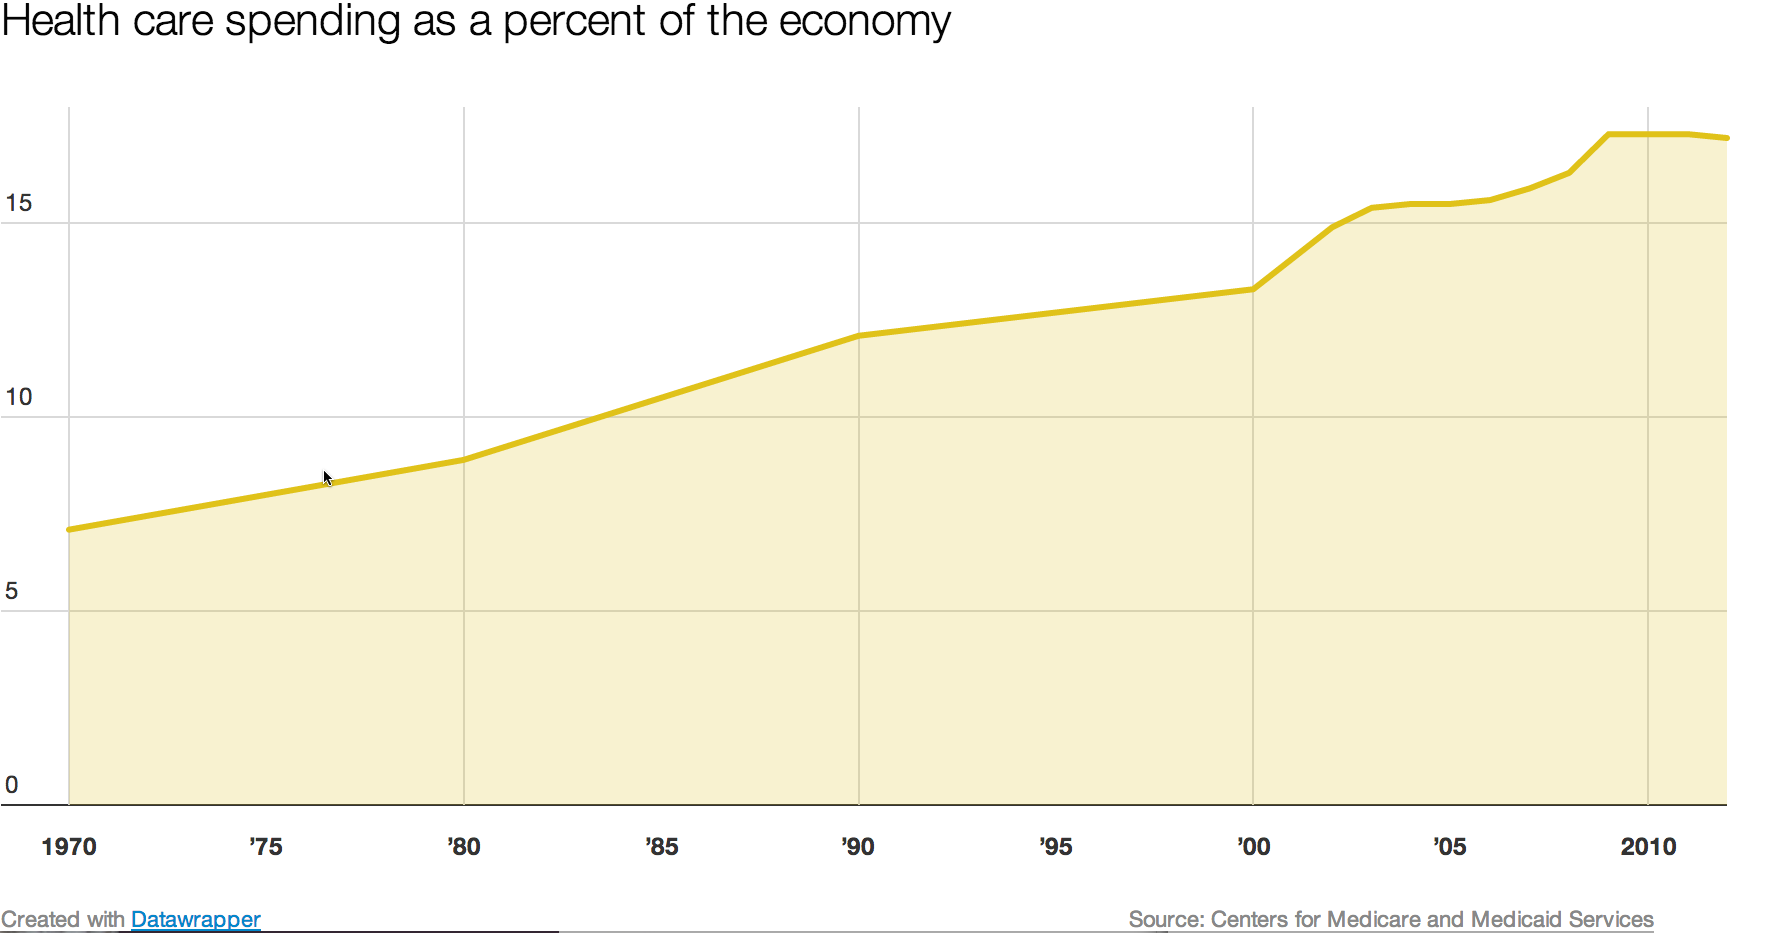 Health_spending_as_percent_of_the_economy